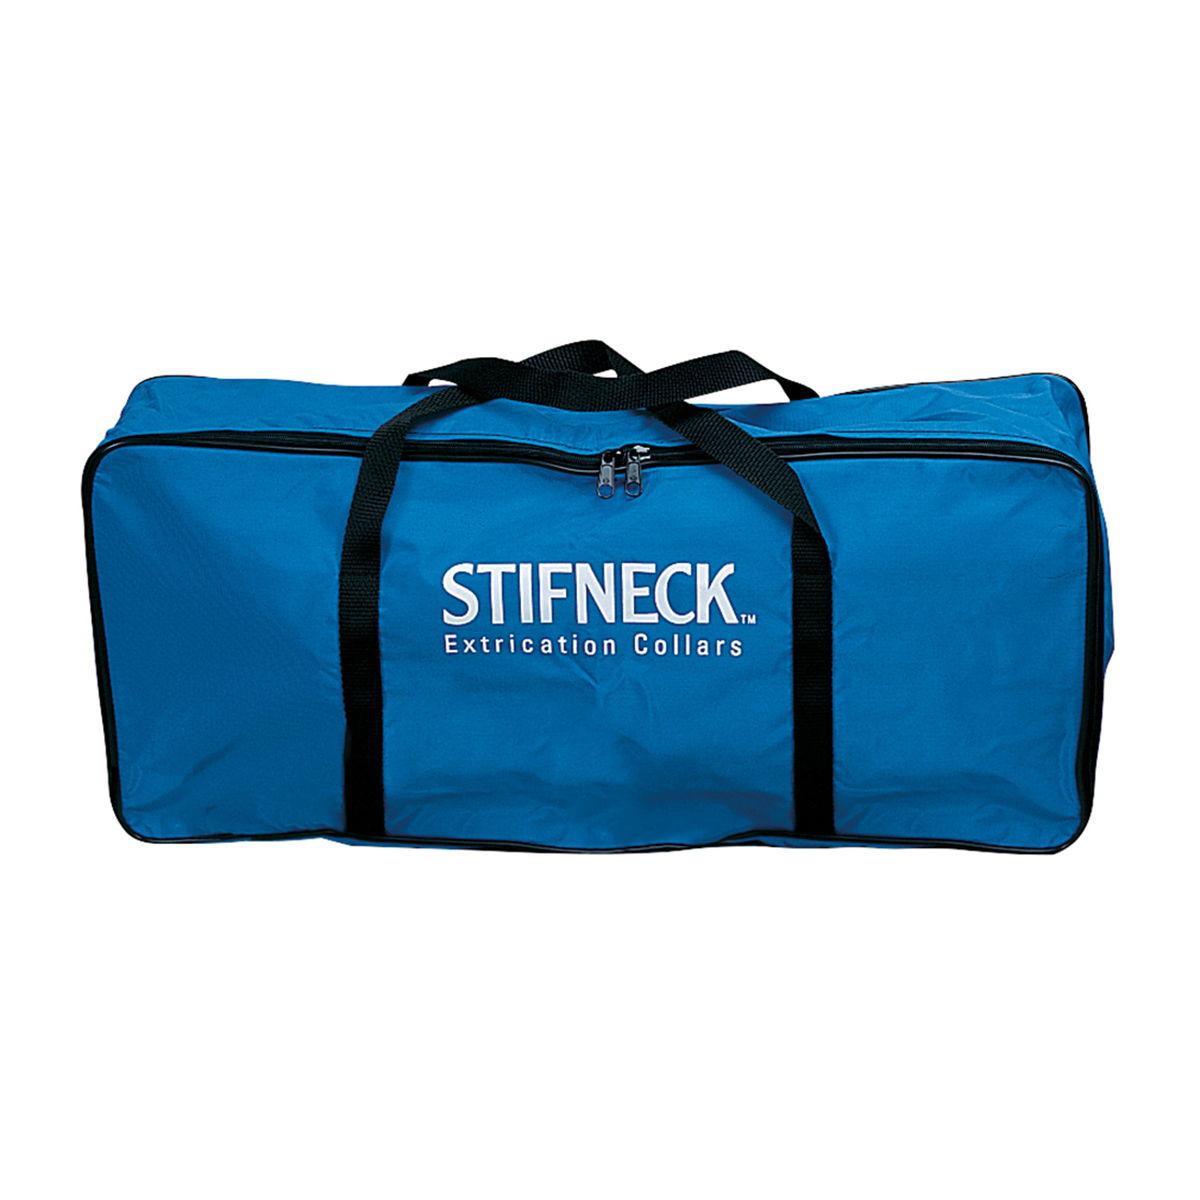 Stifneck Carry Bag